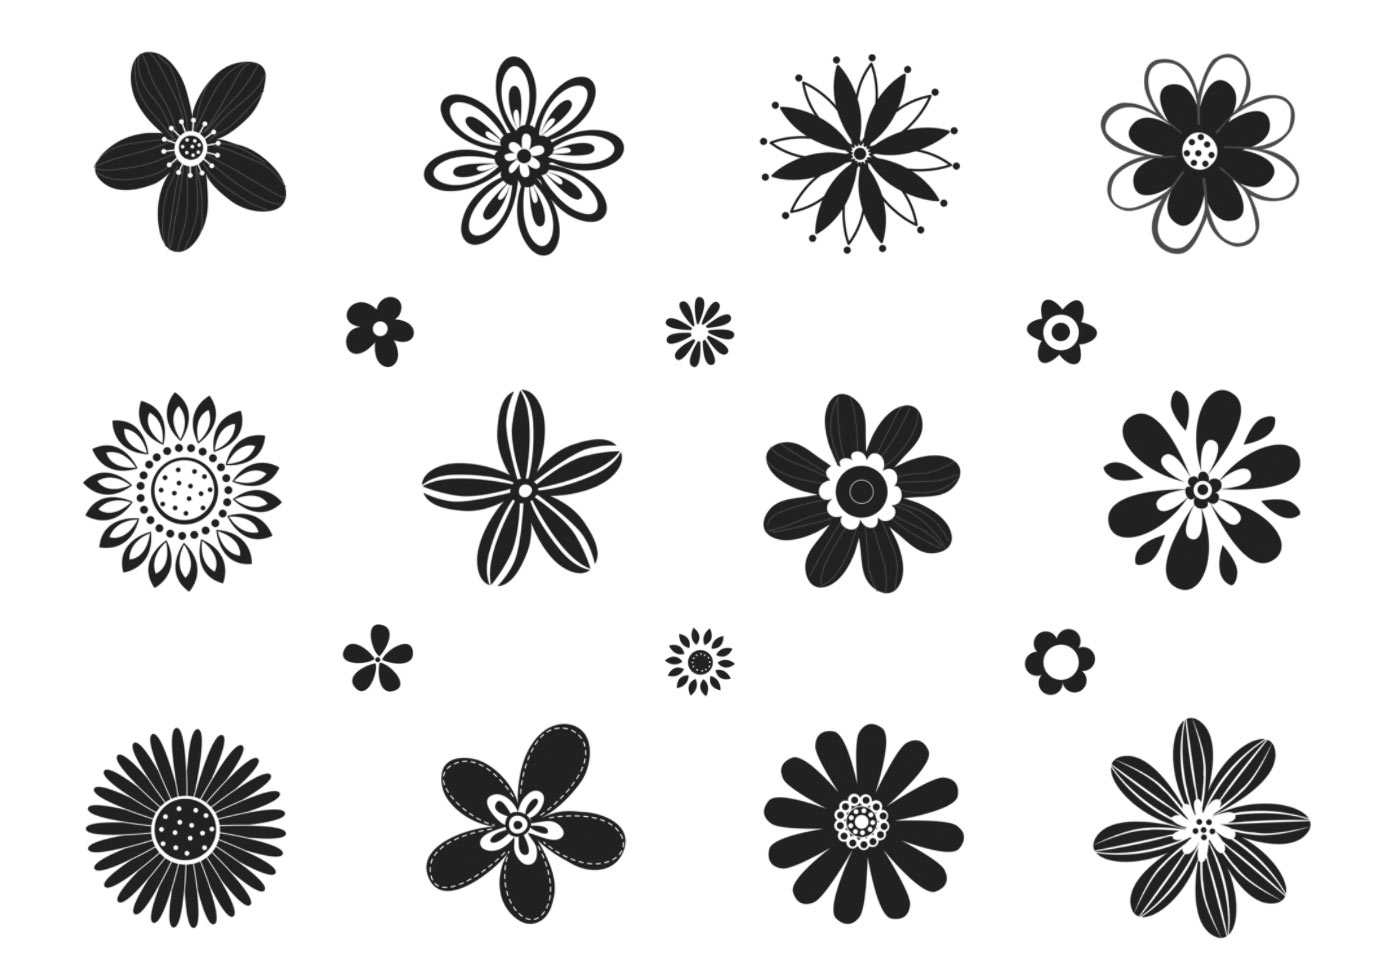 Stylized Black And White Flower Brushes Pack